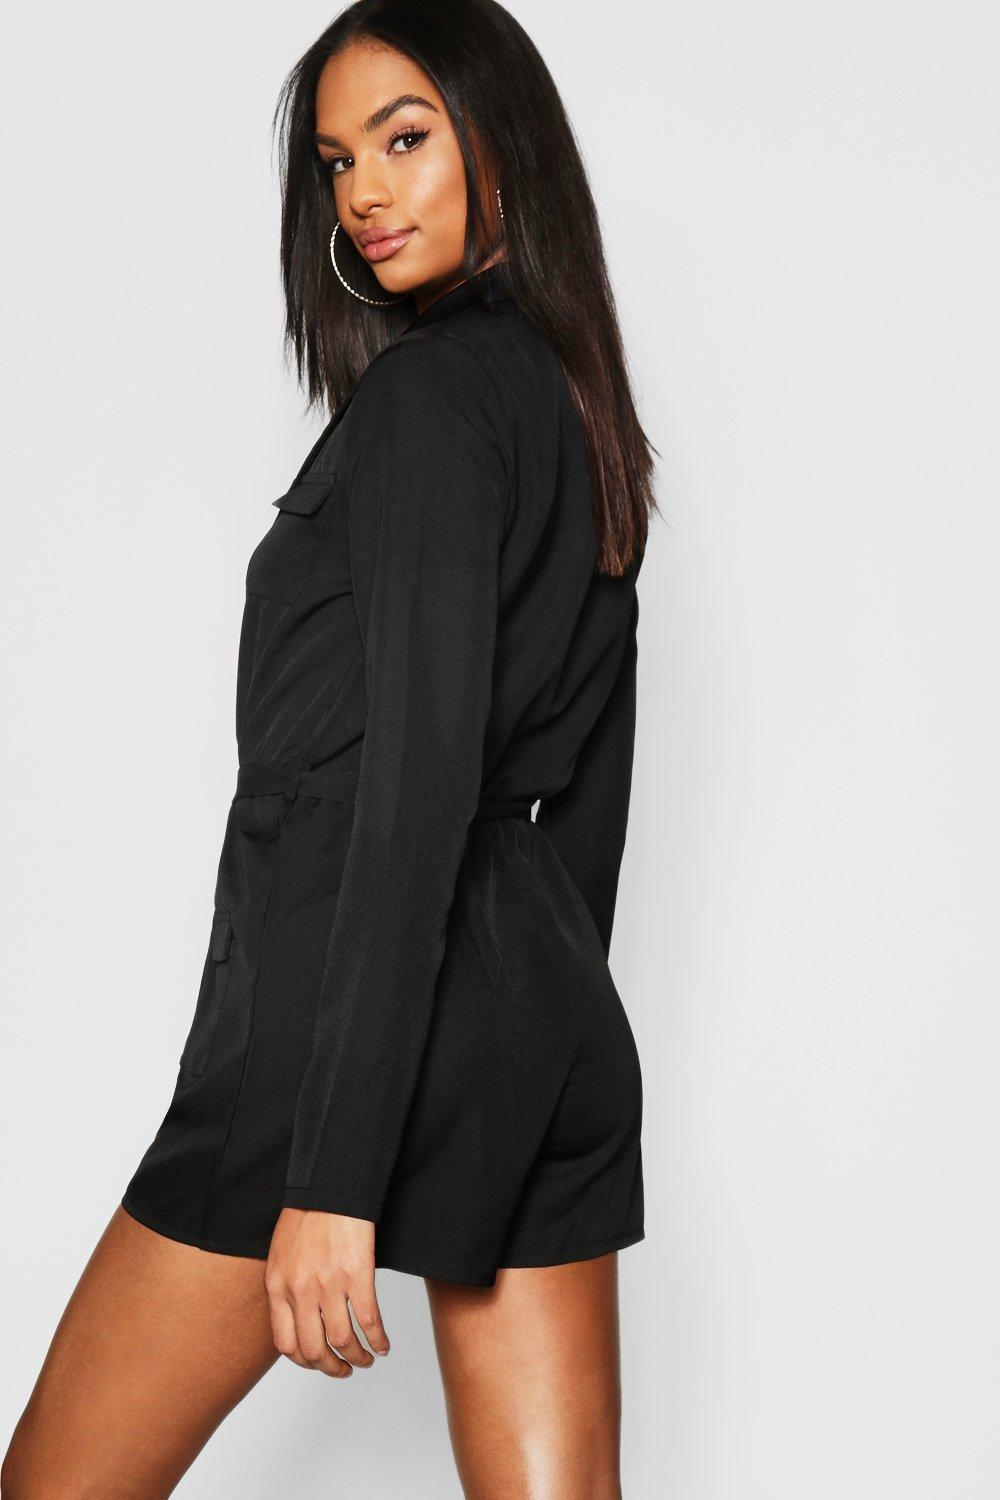 3d0ebfacd7 Boohoo - Black Tall Utility Style Belted Playsuit - Lyst. View fullscreen